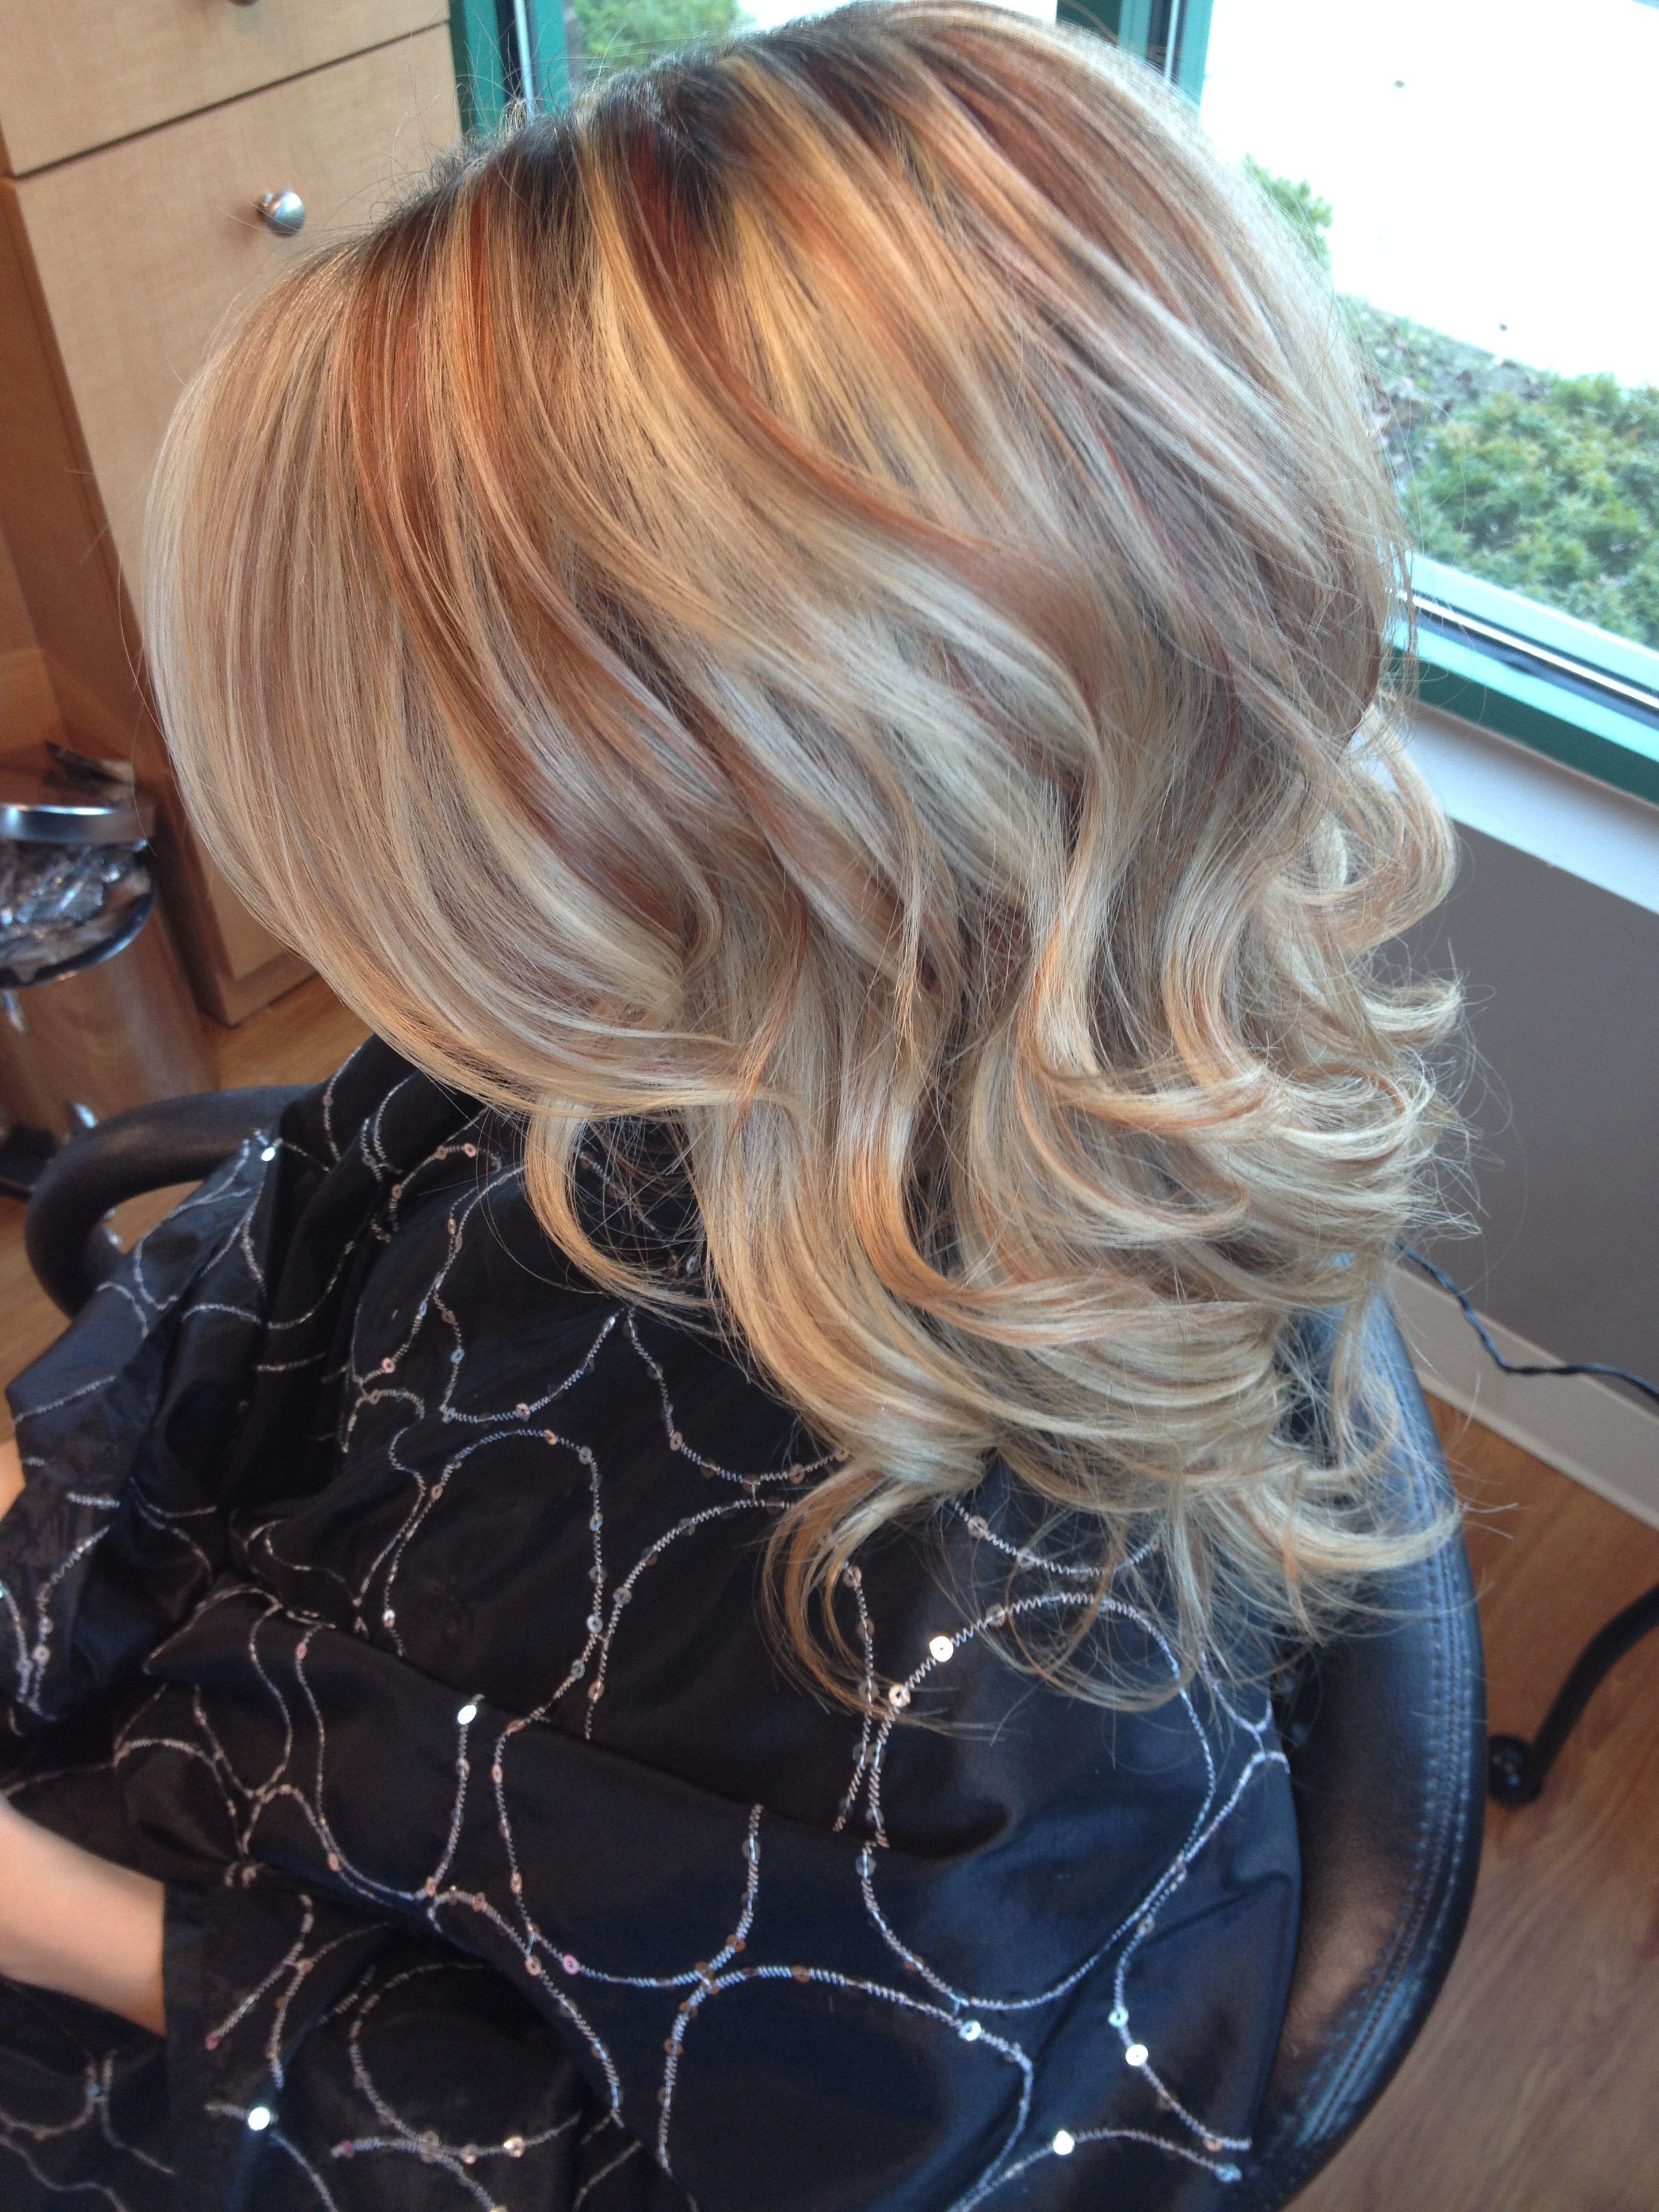 Blonde With Copper Highlights Curls Blonde Hair Copper